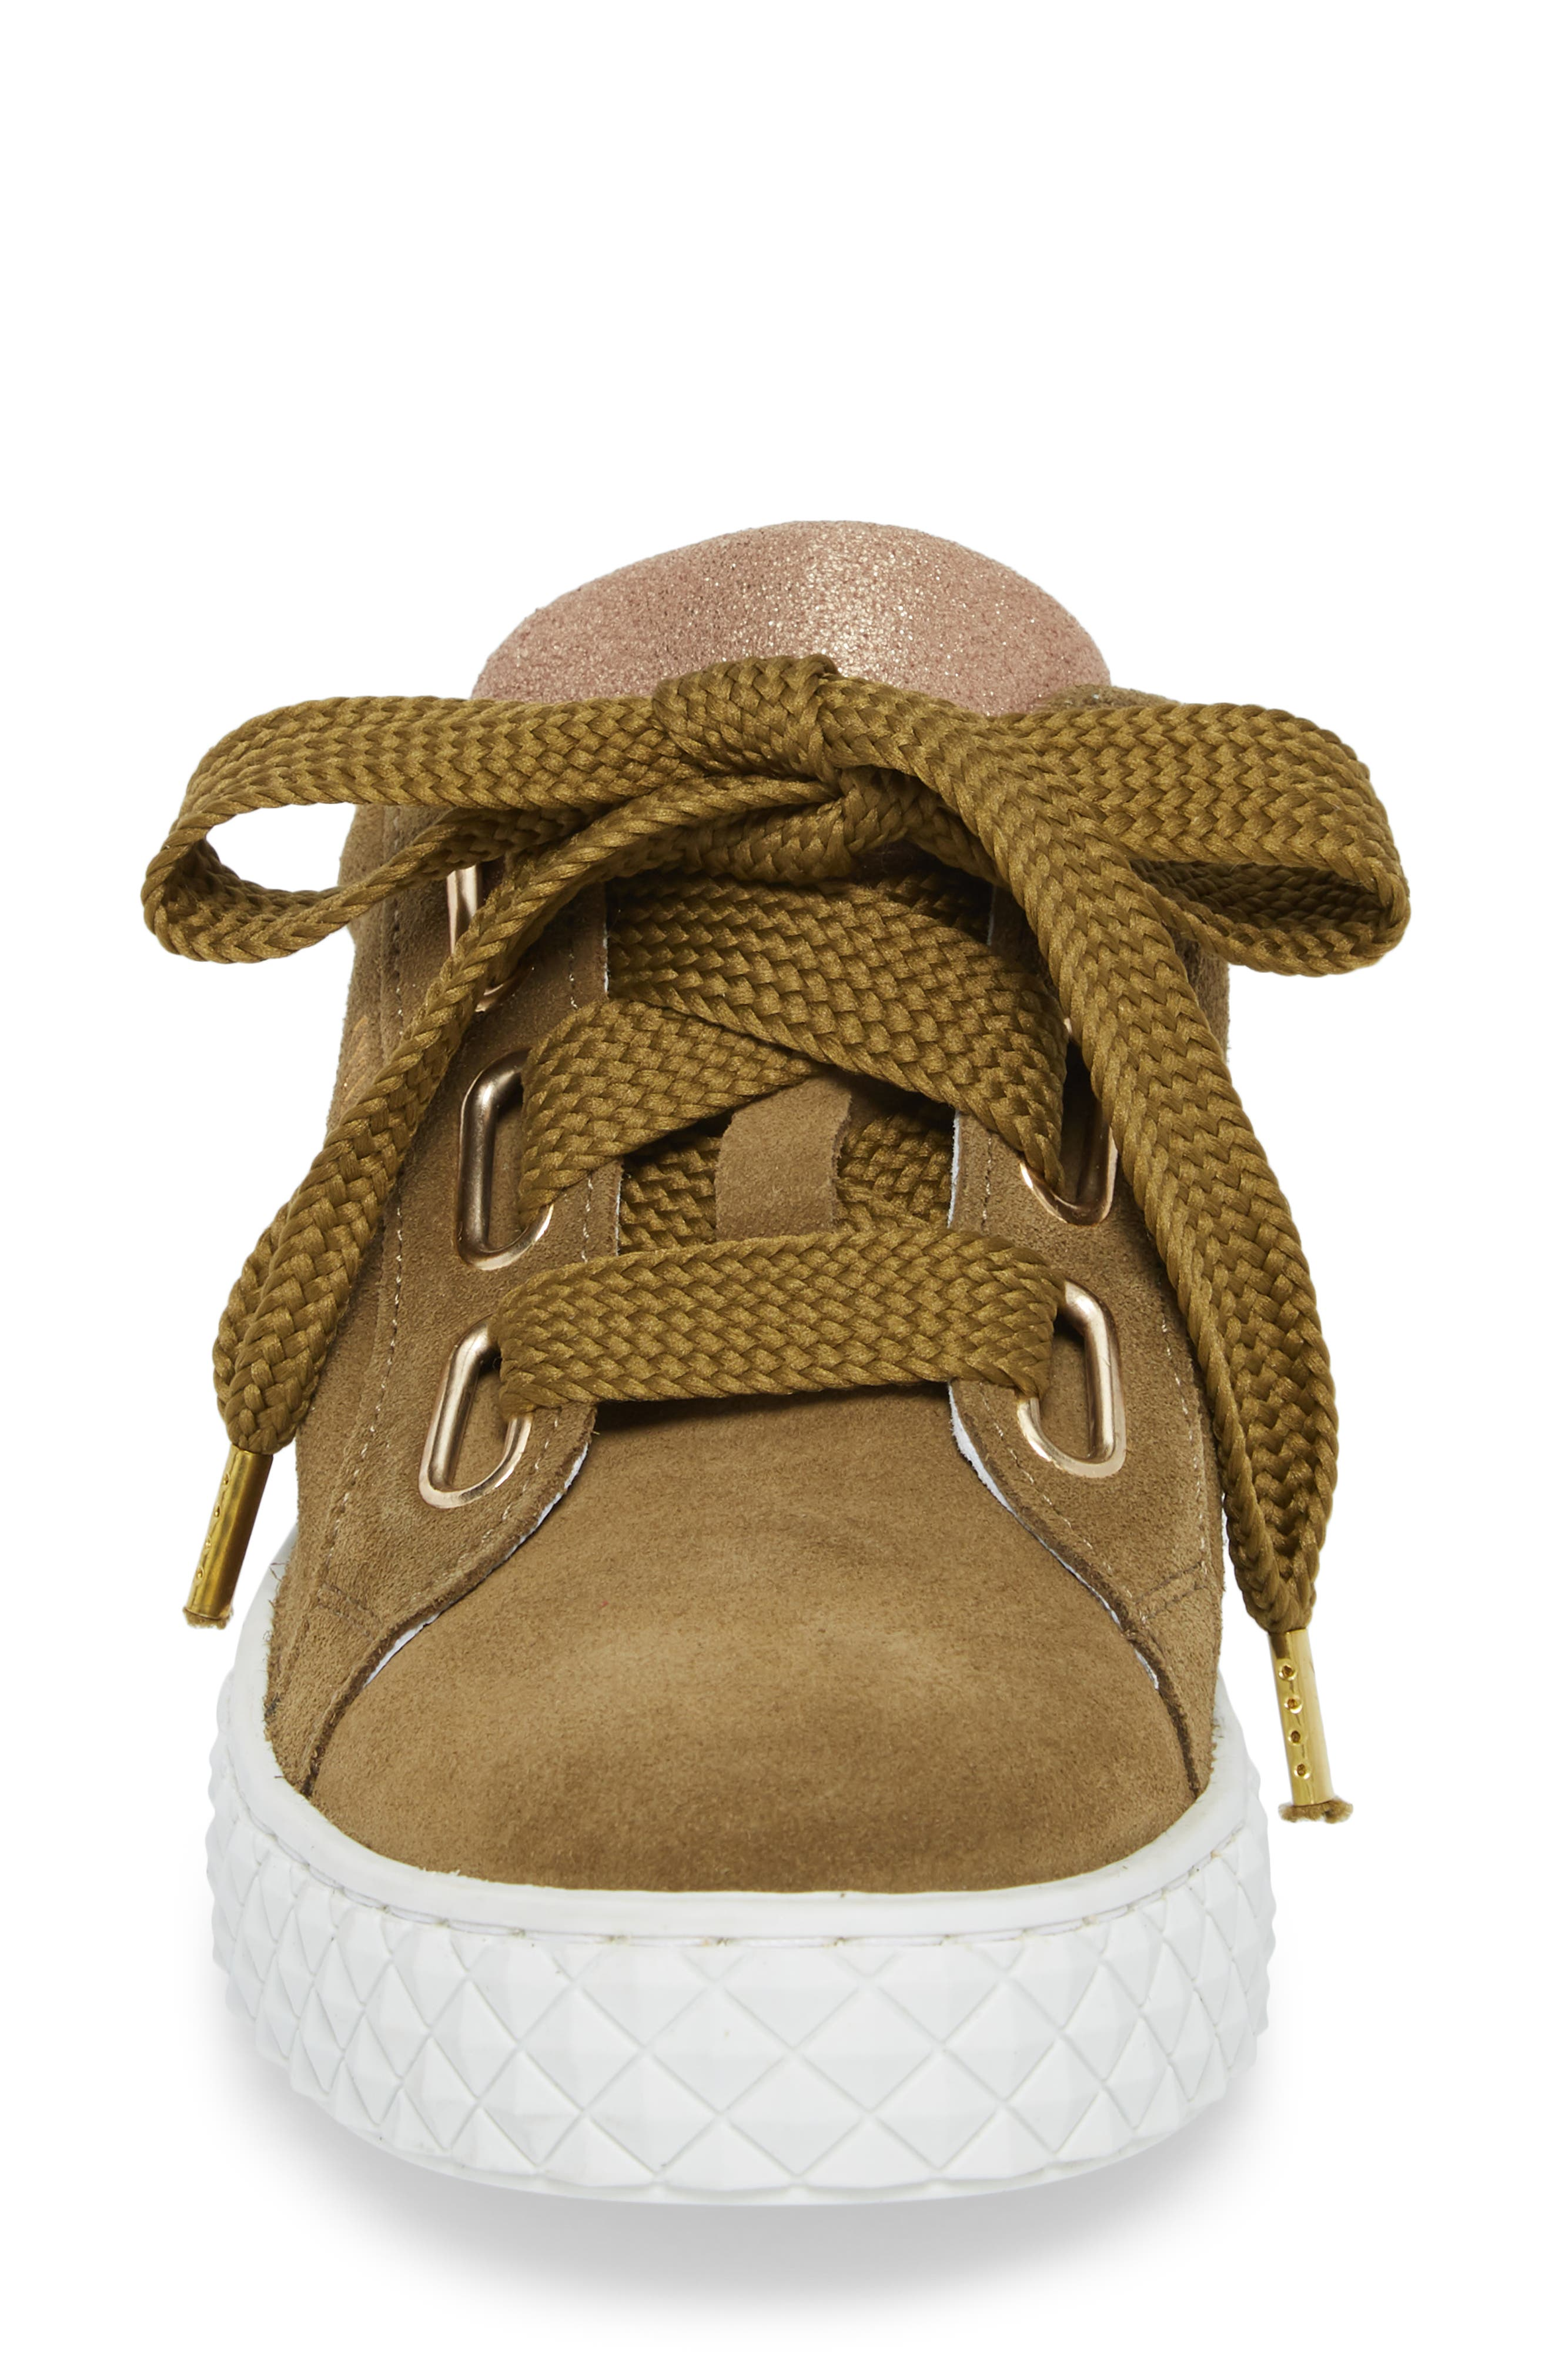 Acton III Sneaker,                             Alternate thumbnail 4, color,                             Military Green/ Gold Suede